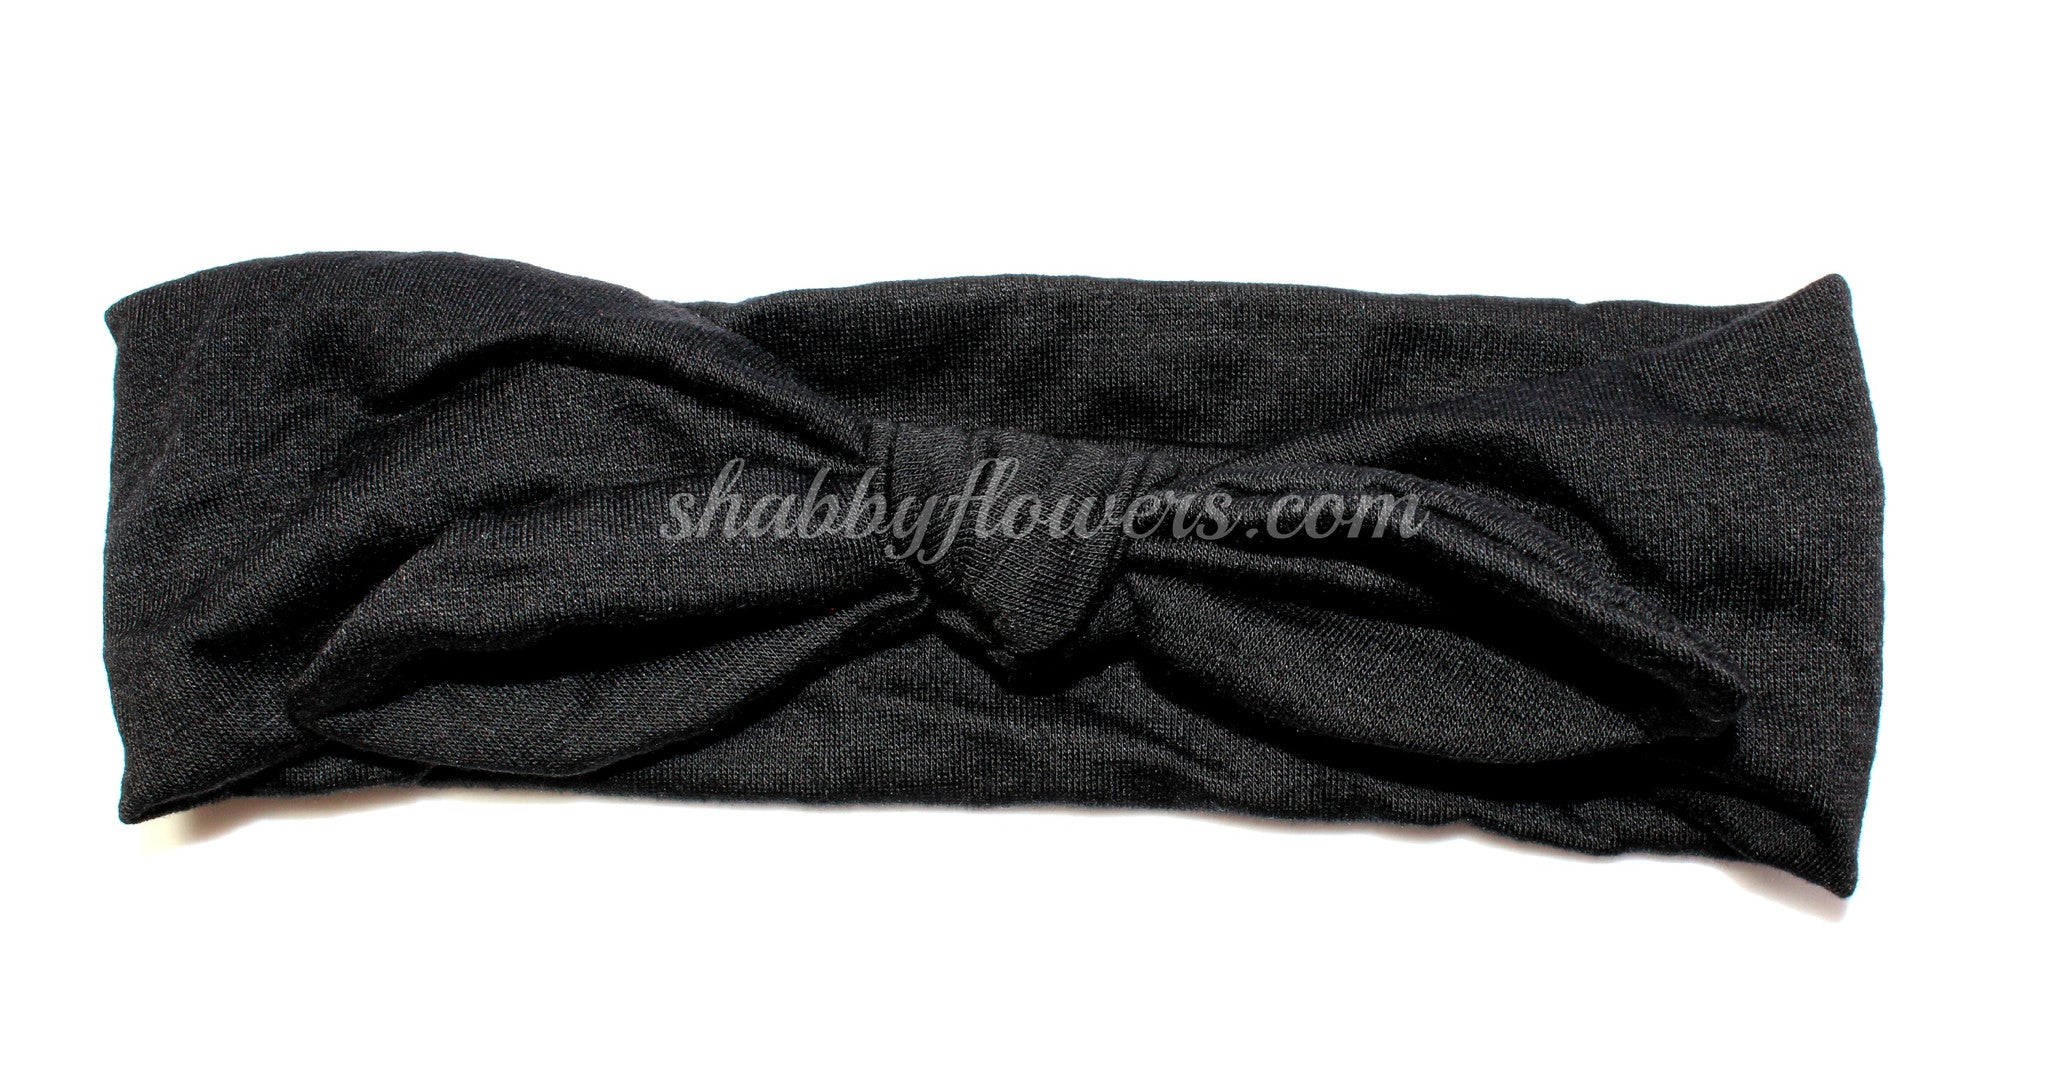 Knot Headband - Black - Small - shabbyflowers.com